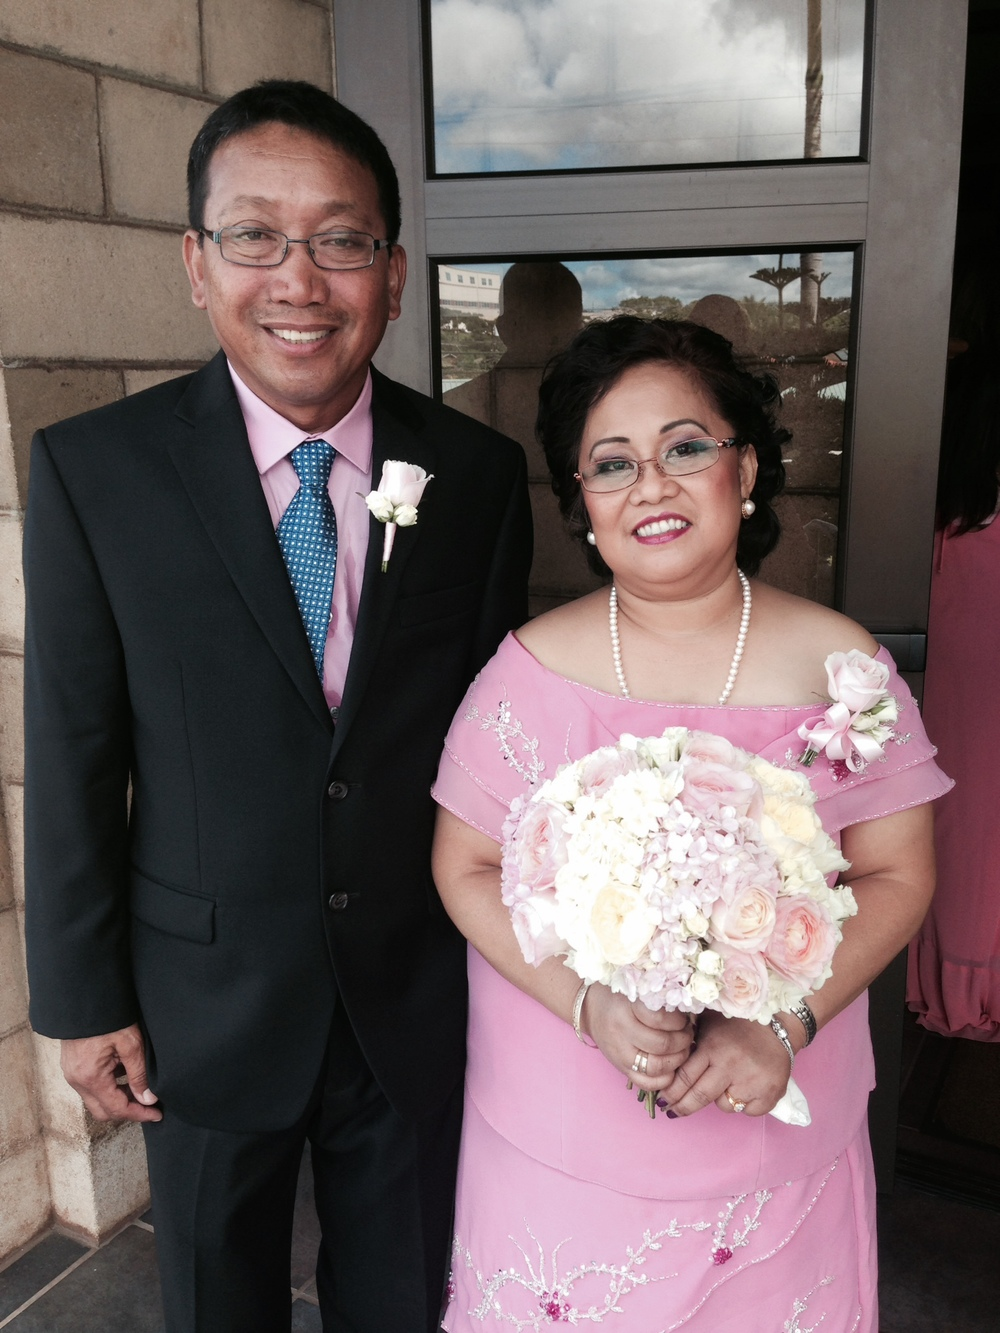 3-church-wedding-oahu.JPG